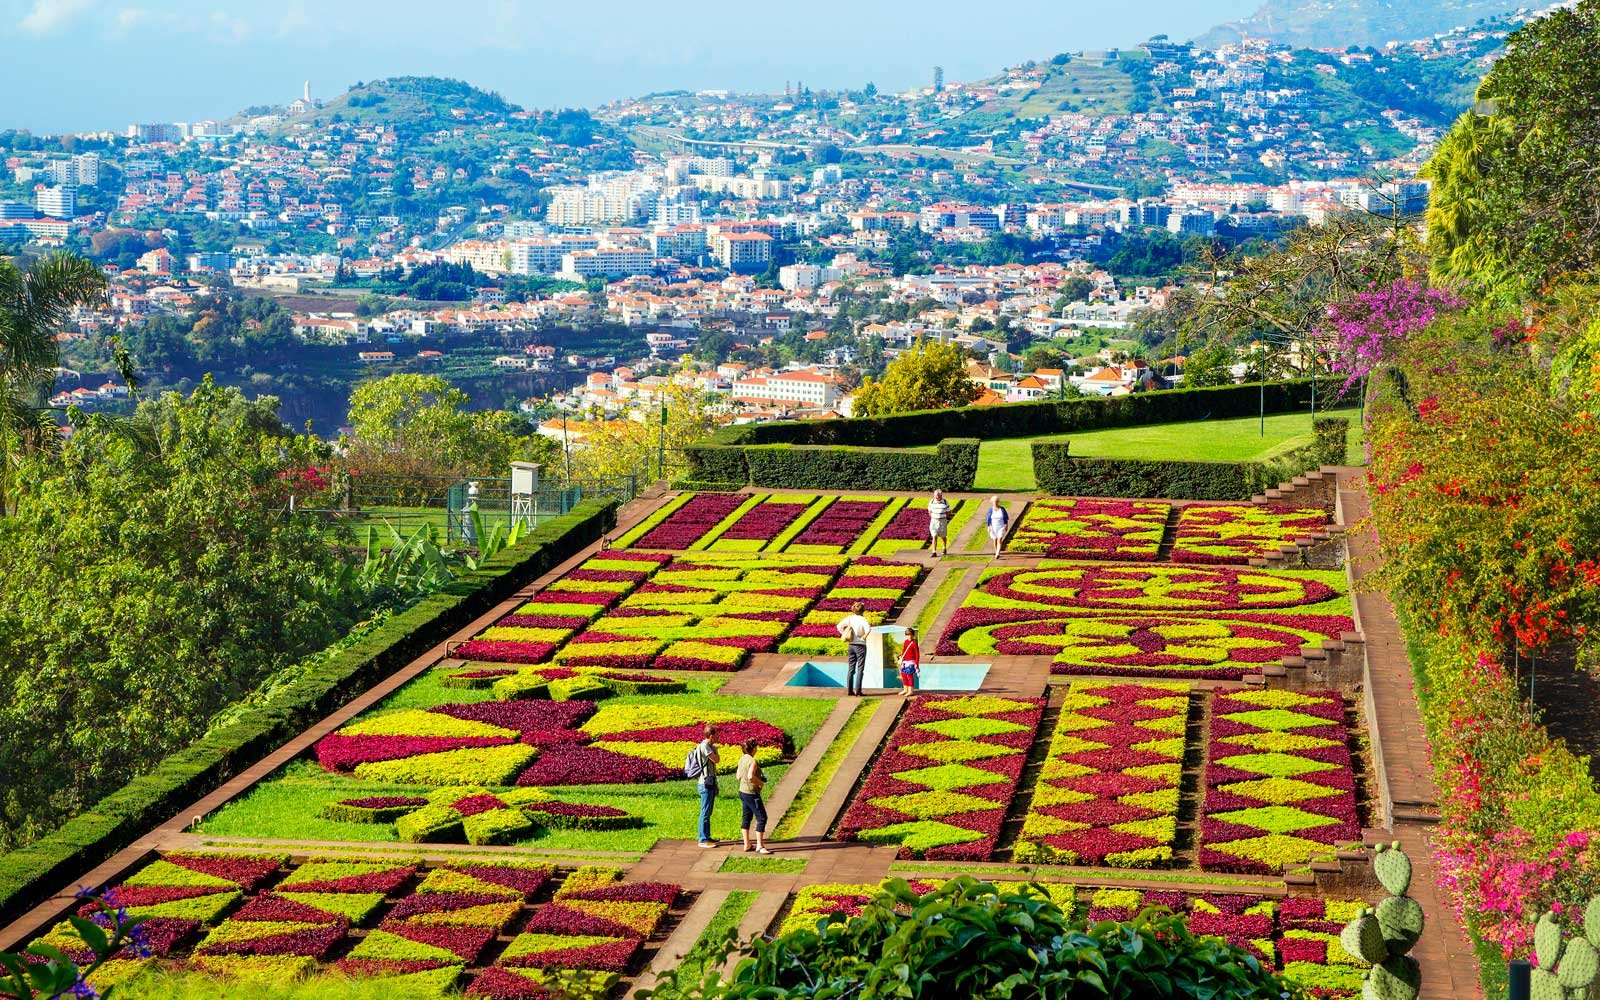 Portugal's Madeira Islands Have Hiking, Biking, and Loads of Wine